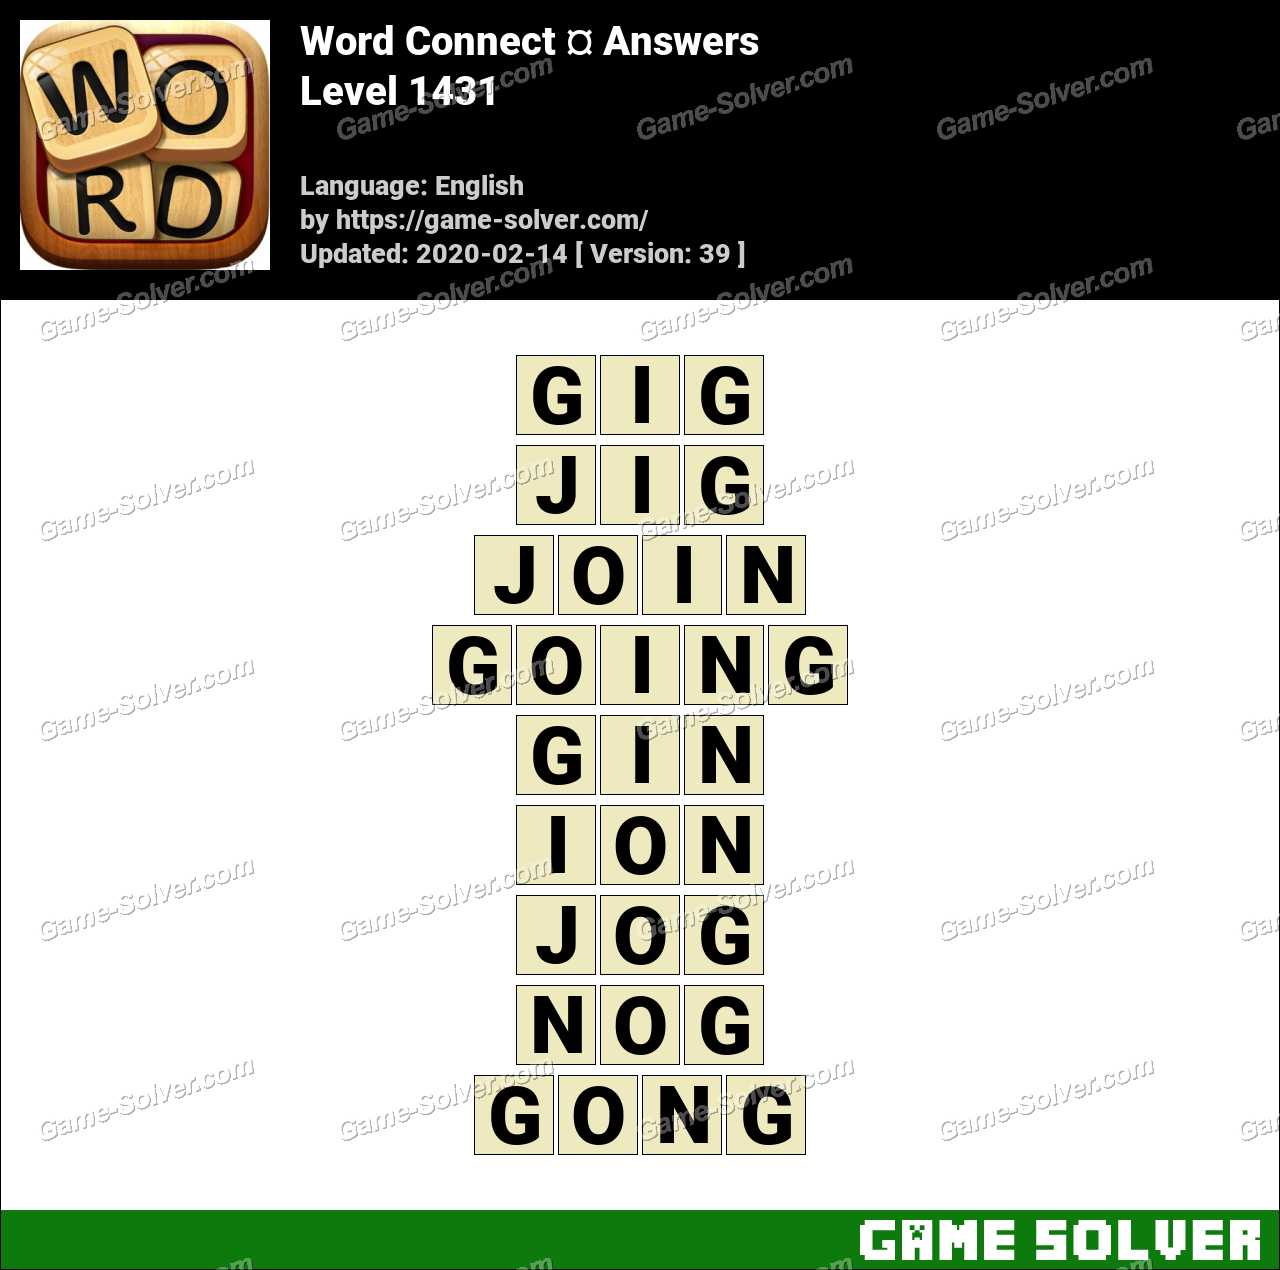 Word Connect Level 1431 Answers